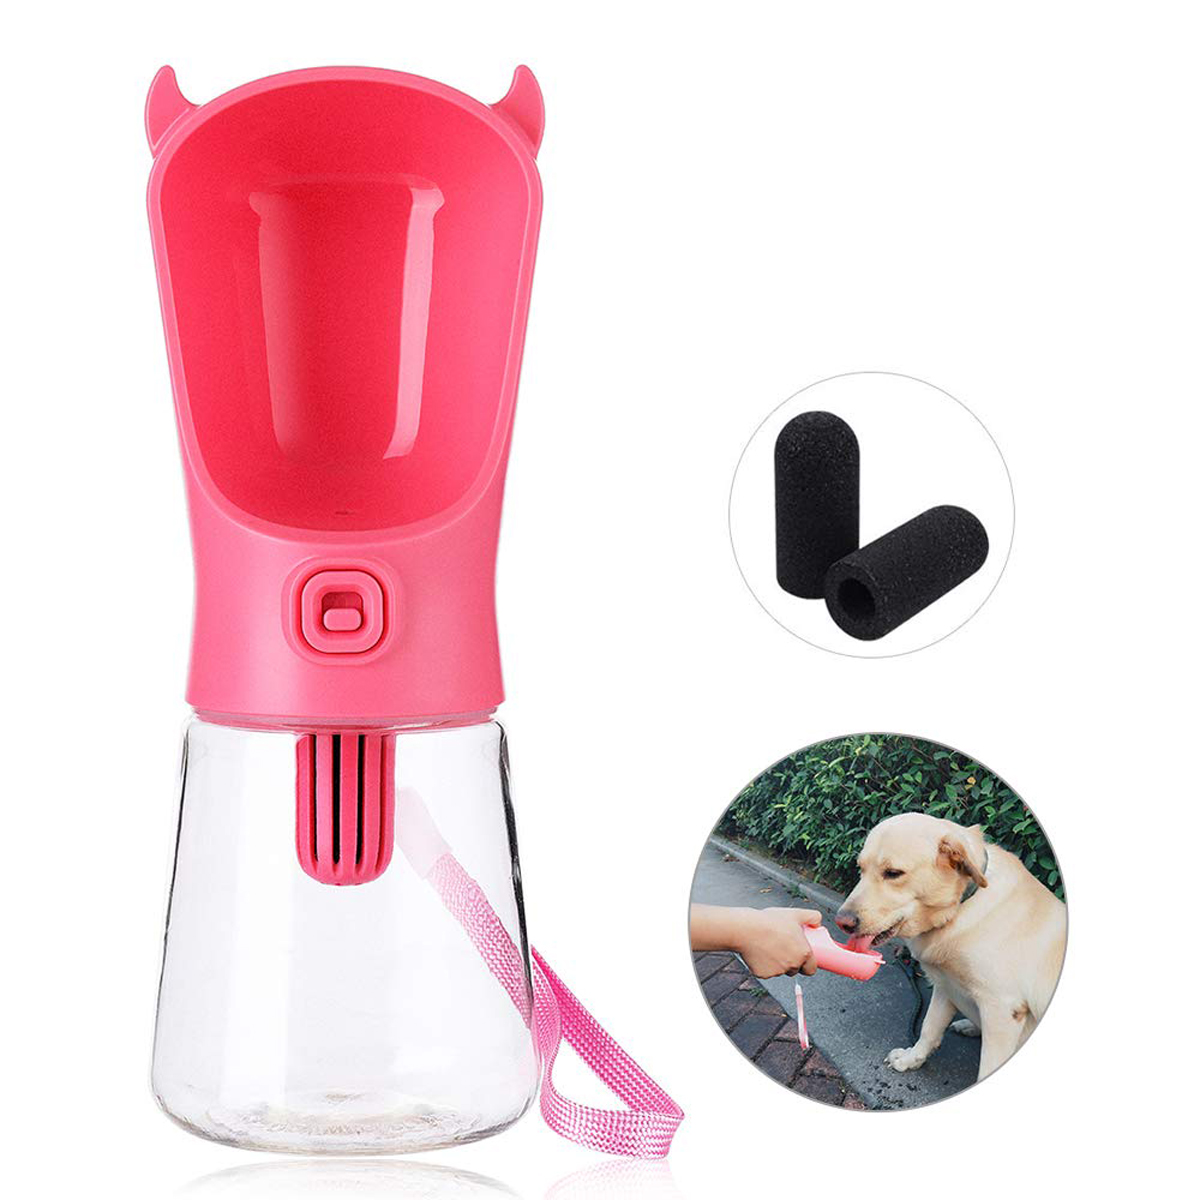 350ml Portable Pet Dog Filtration Water Bottle Indoor Outdoor Car-Ride Travel Use Leak-Proof Drink Cup